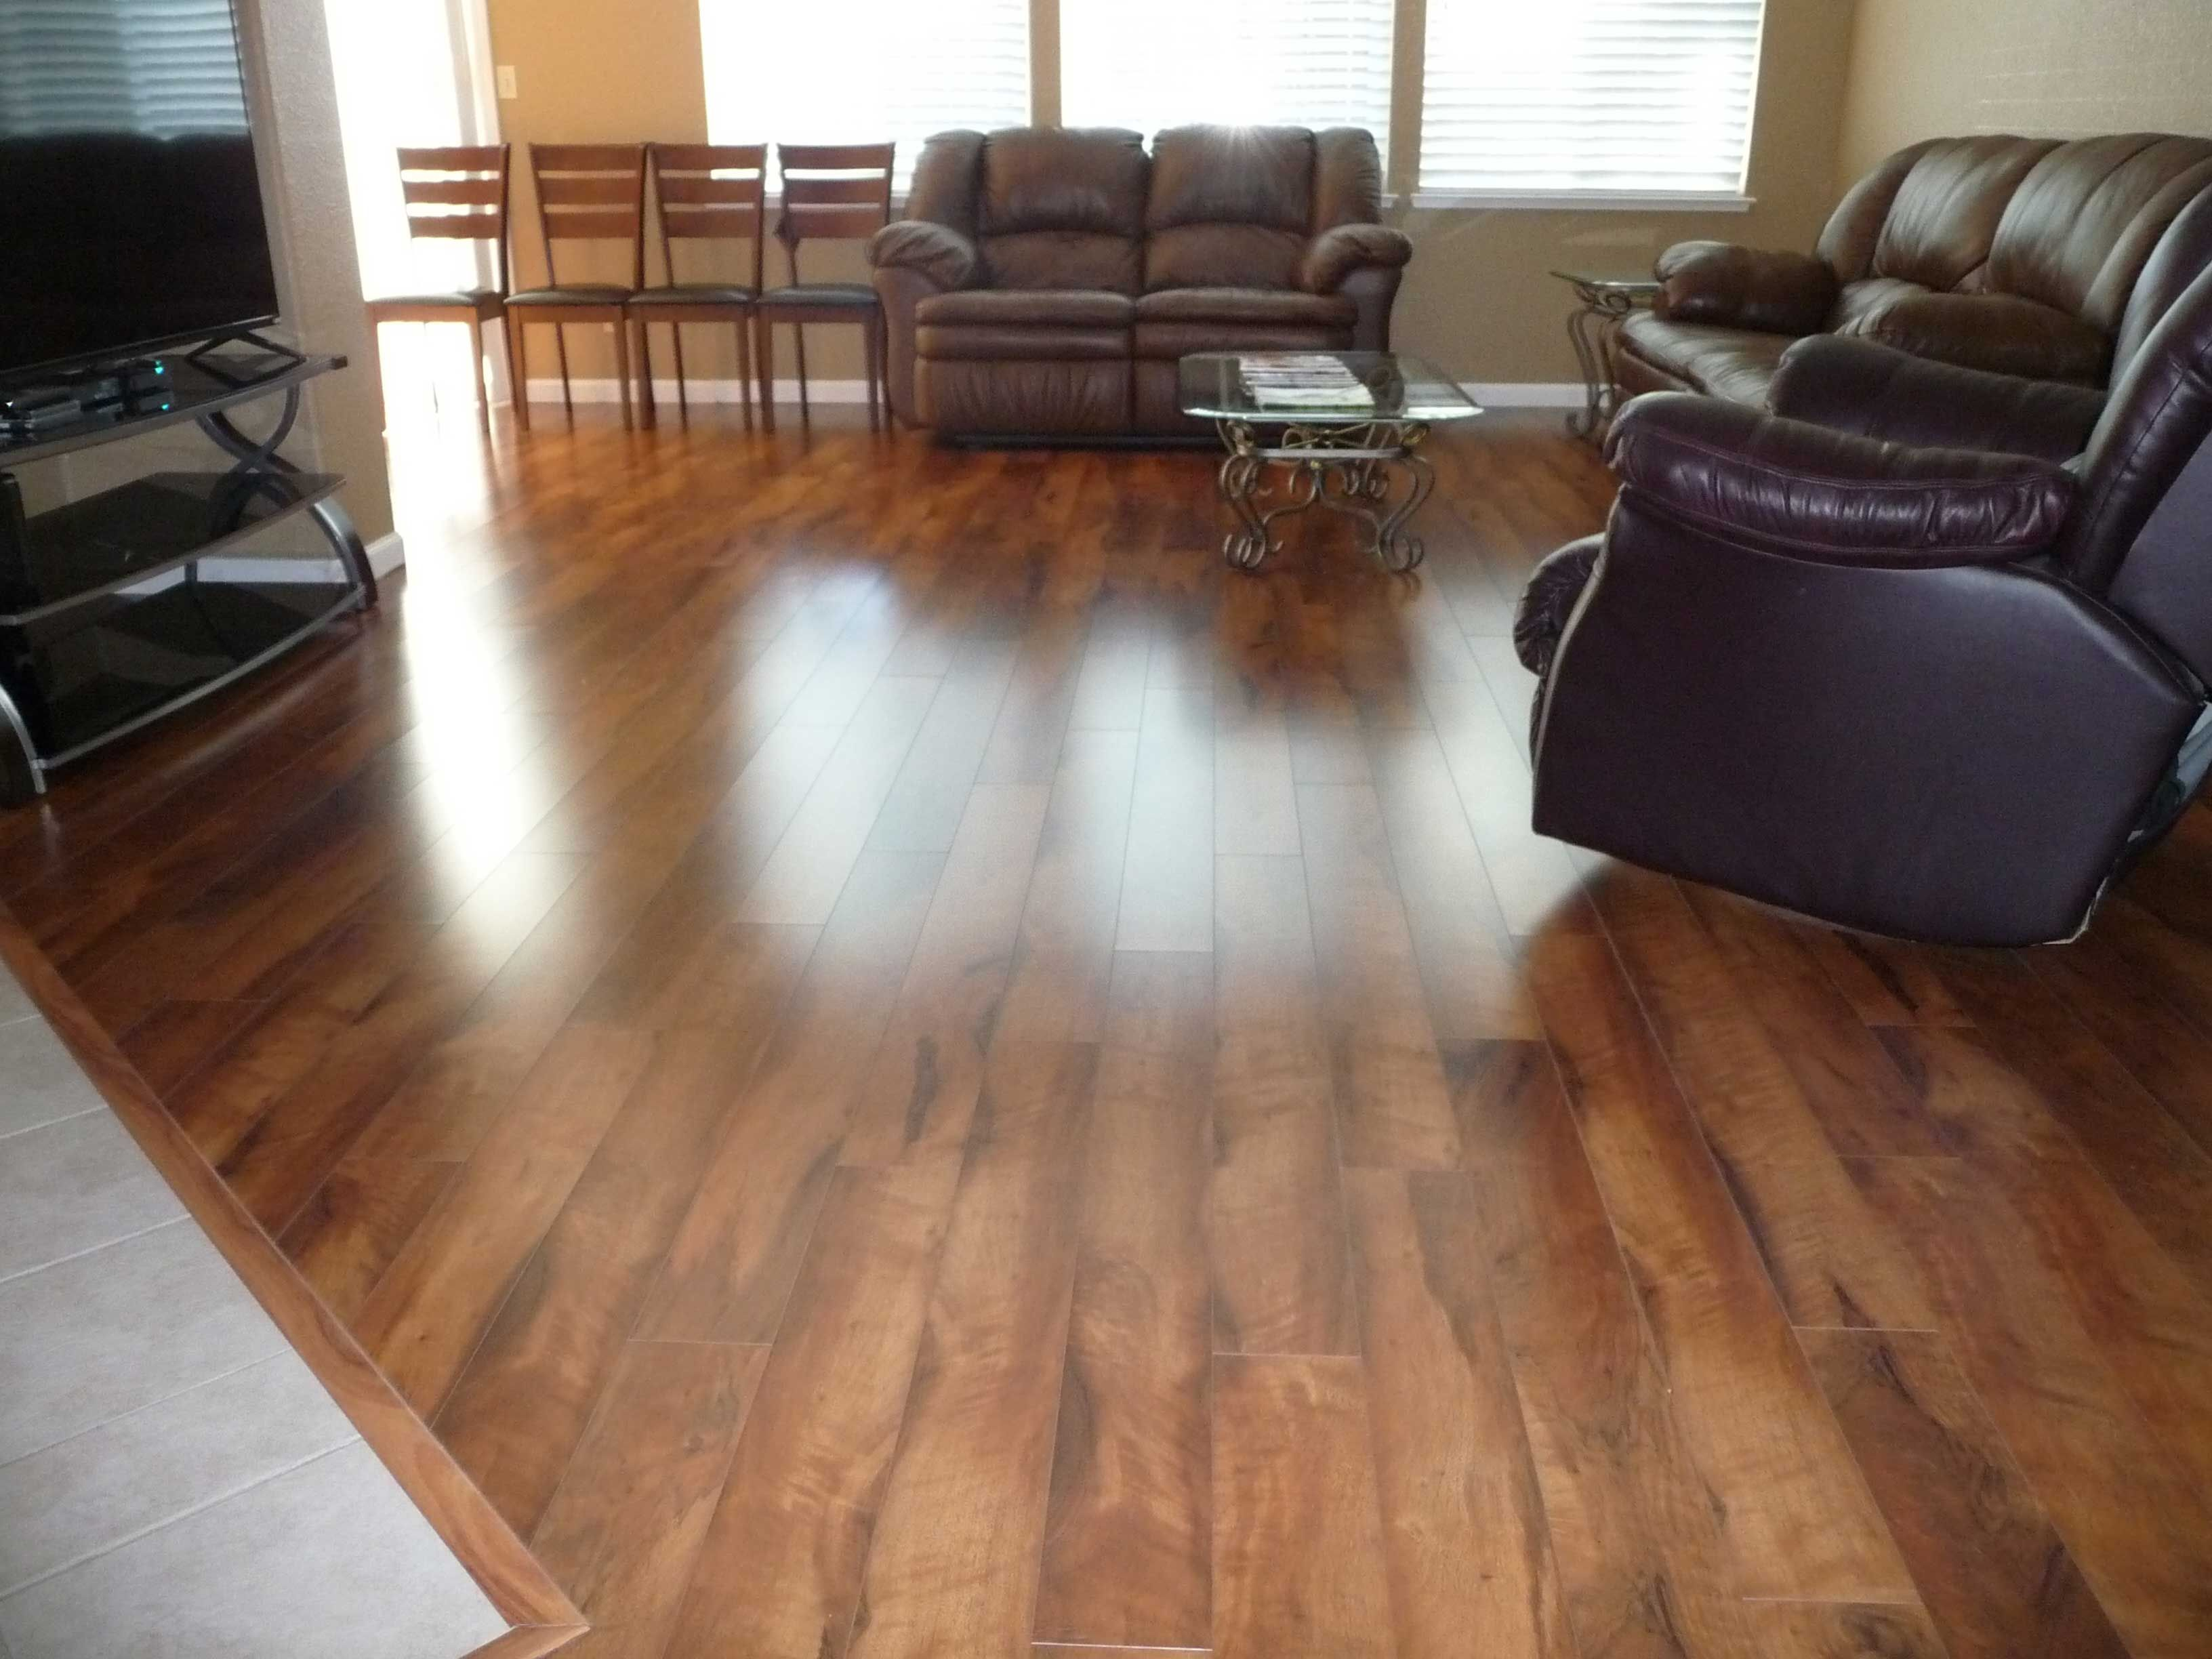 Flooring Liquidators (With images) Flooring, Flooring